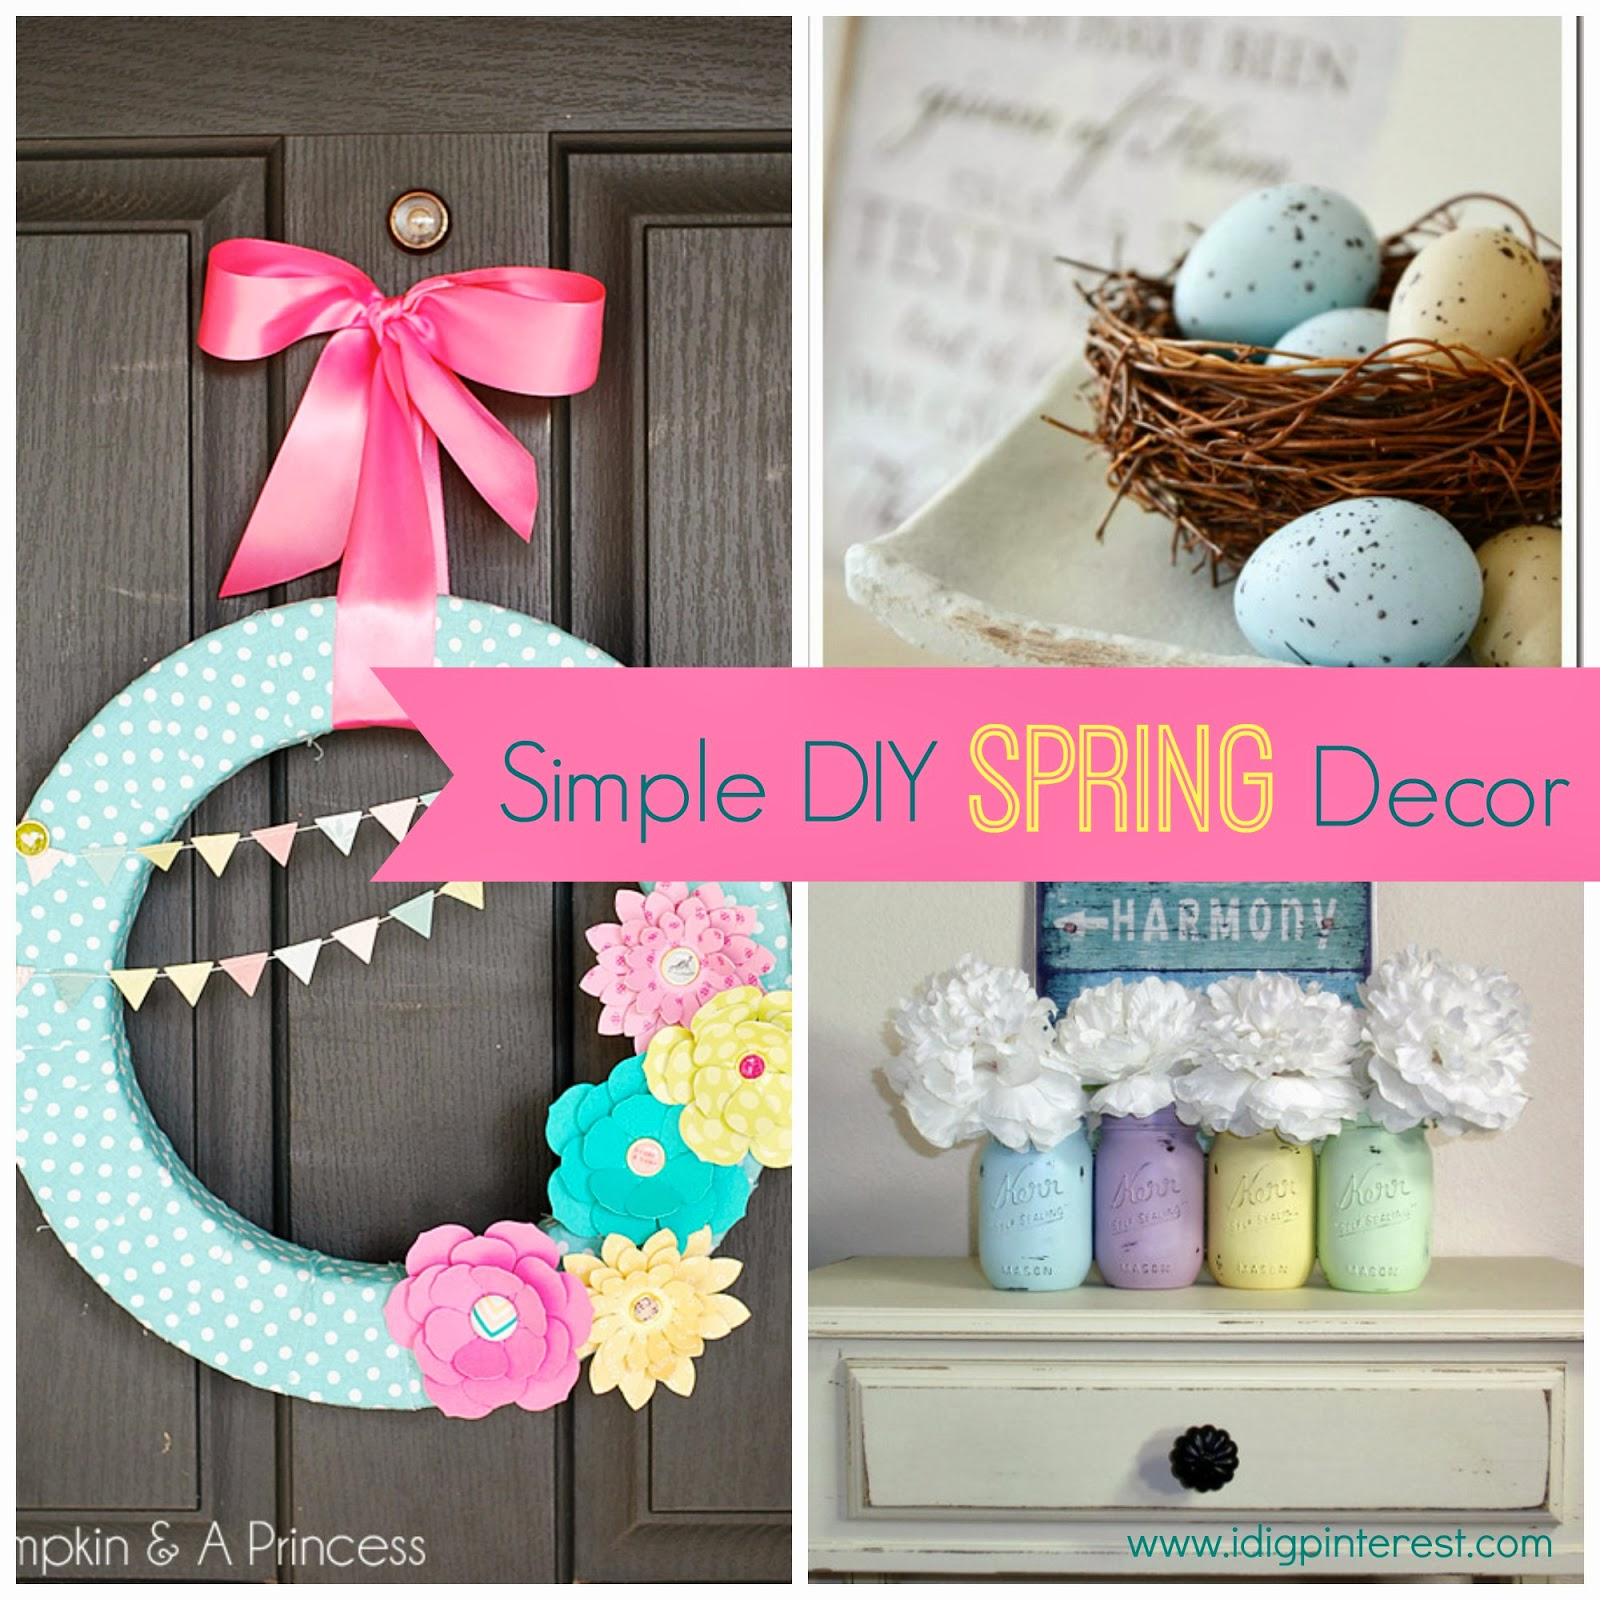 Simple diy spring decor ideas i dig pinterest for Art decoration